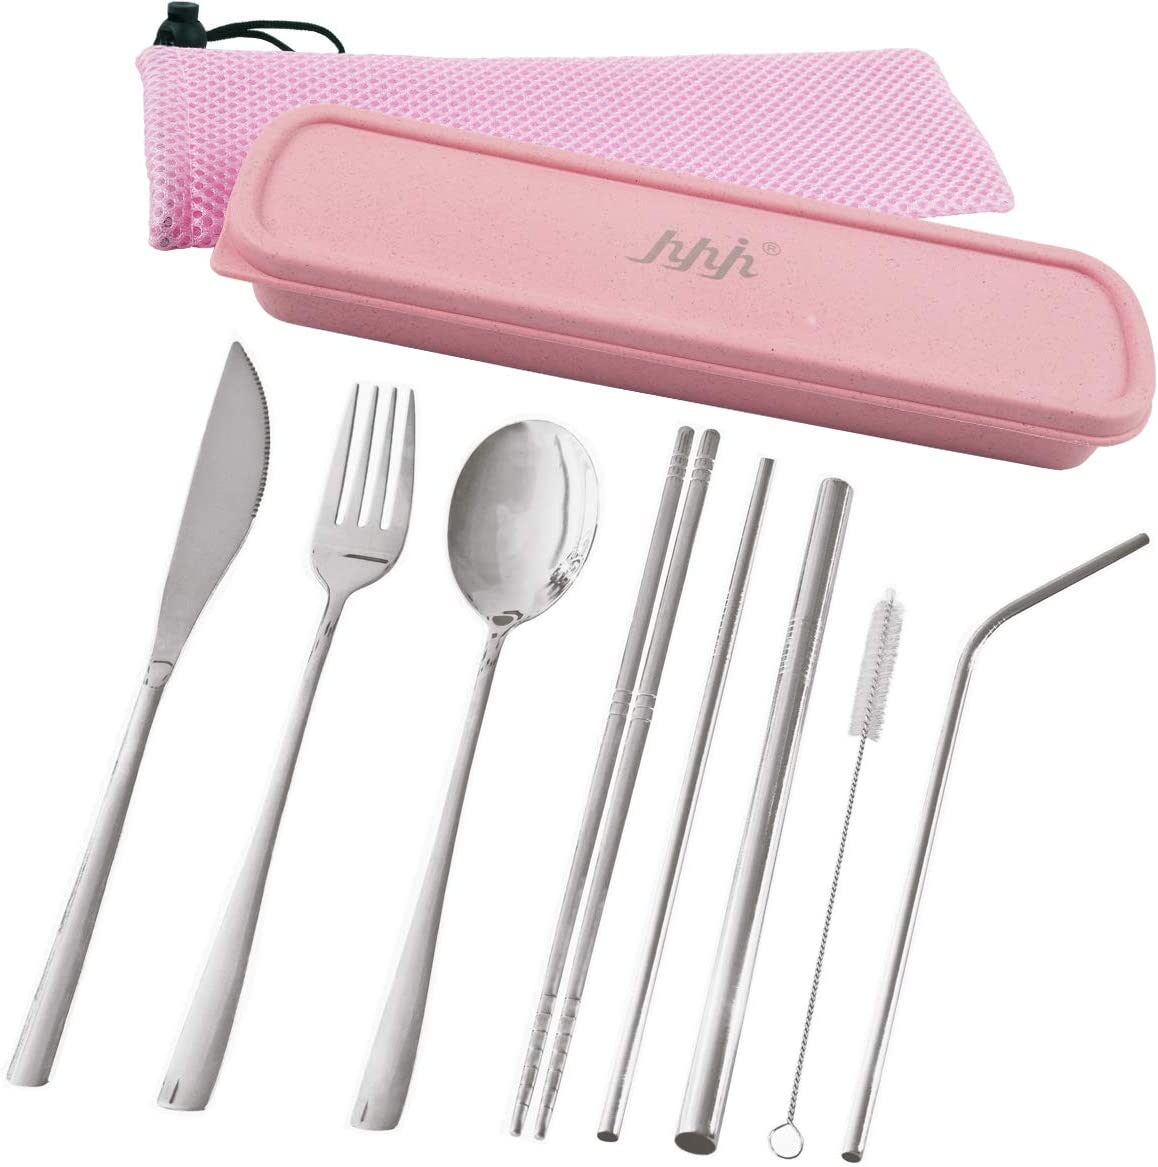 Travel Utensils, hyhjh Reusable Portable Cutlery Camping Utensil Set with Case Including Stainless Steel Knife Fork Spoon Chopsticks Cleaning Brush Straws Pack of 10 (Pink)